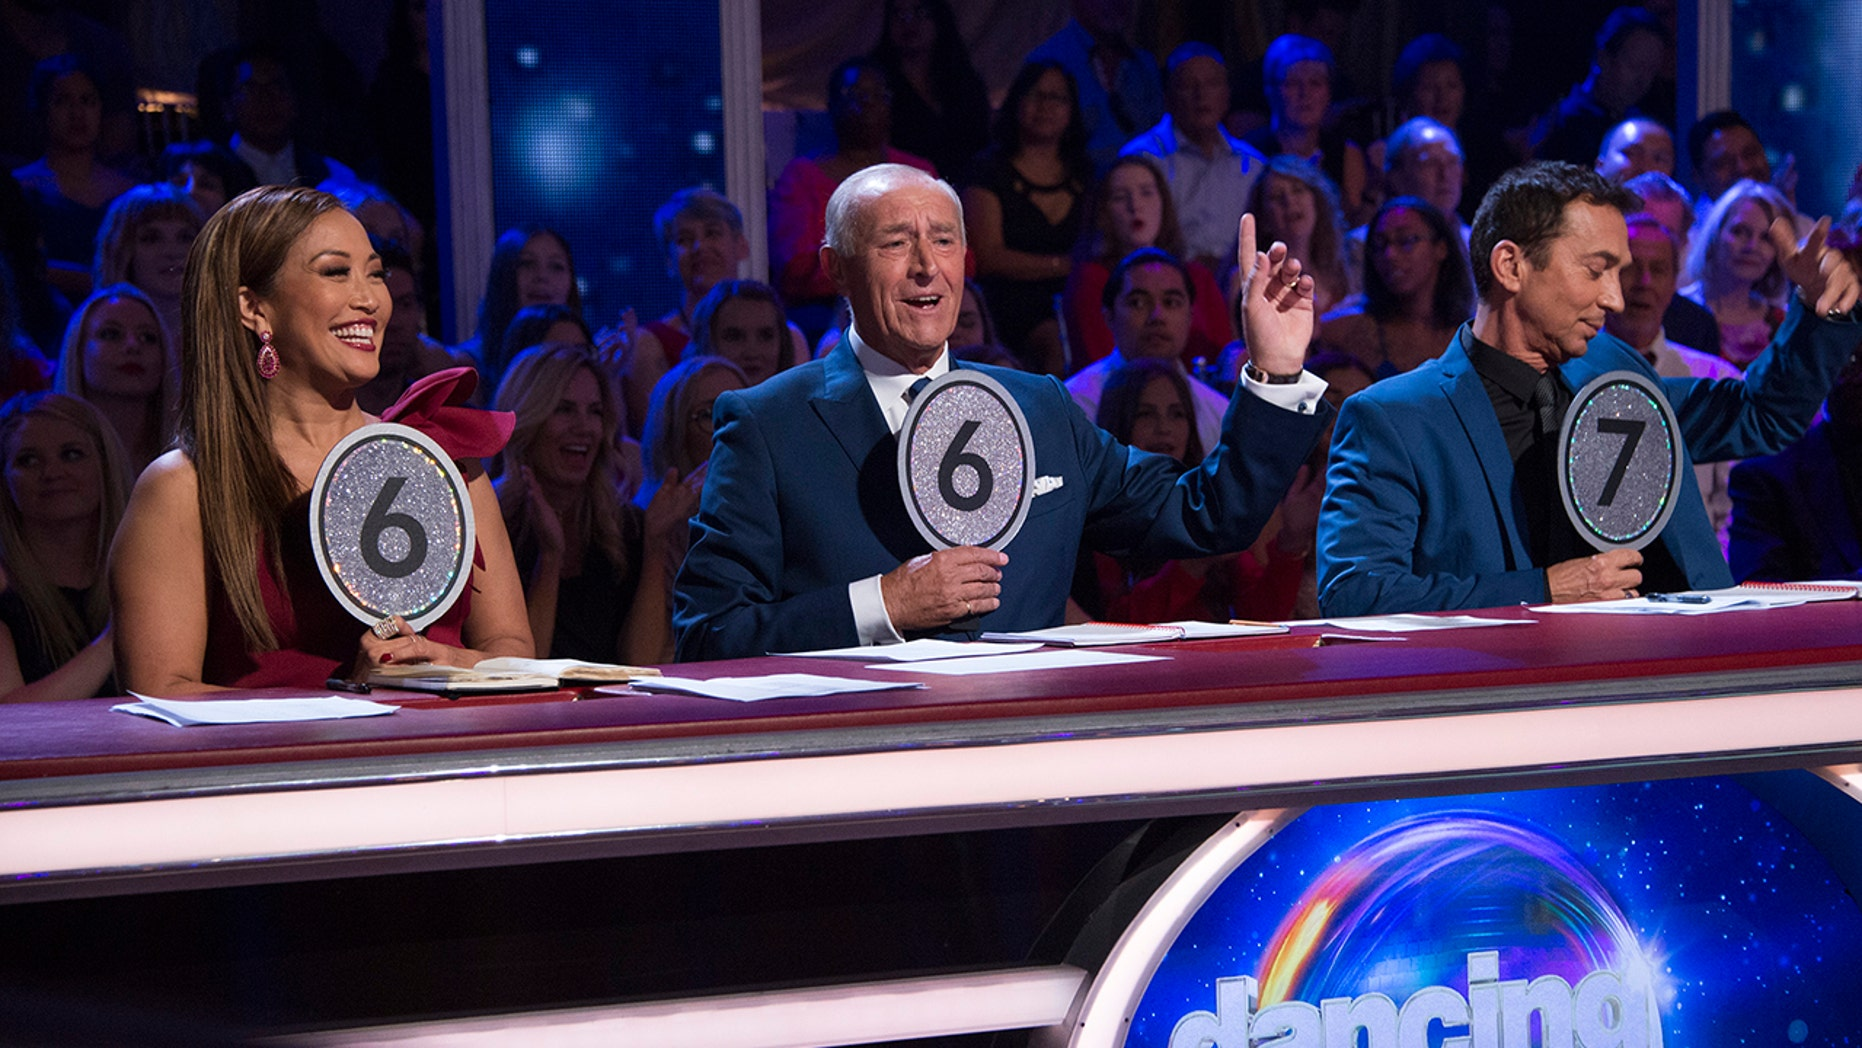 """""""Dancing with the Stars"""" judges from l-r: Carrie Ann Inaba, Len Goodman and Bruno Tonioli."""